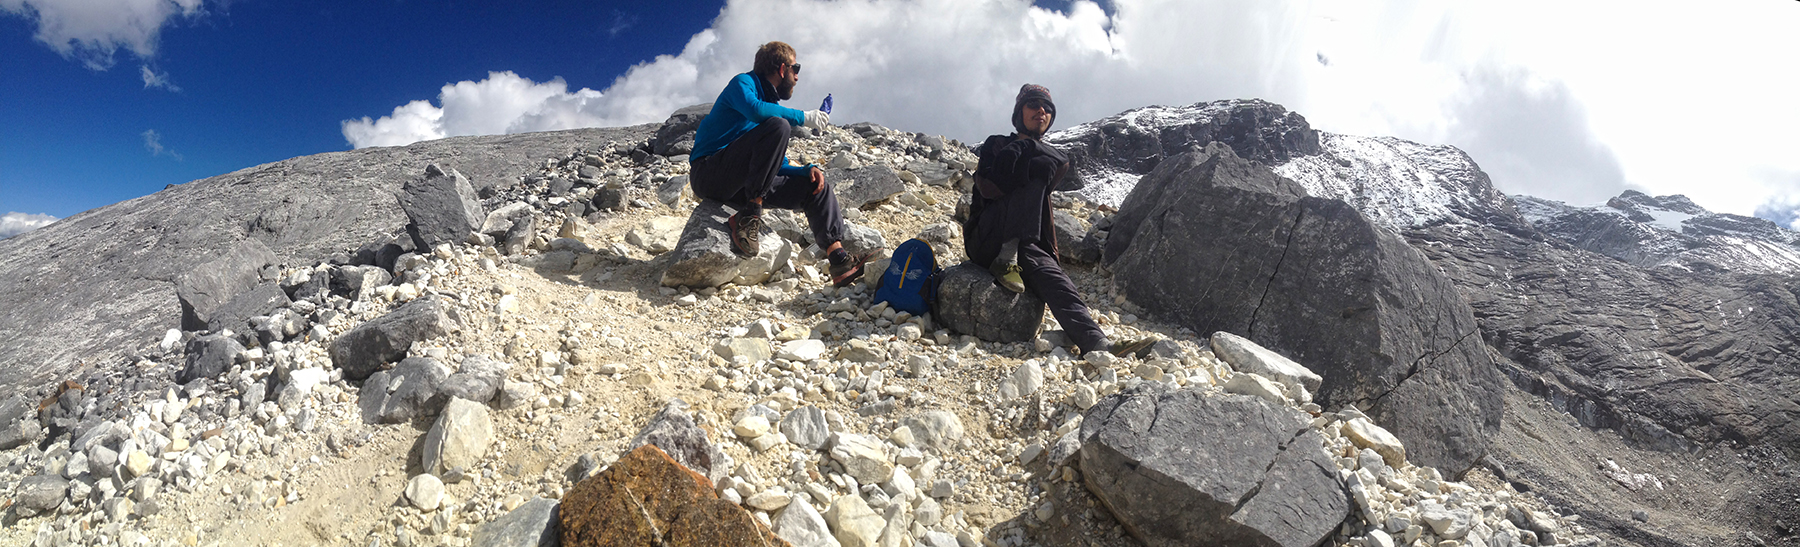 Nico and Louis relax on the upper moraine leading to the final slab and glacier entrance during acclimatization day.